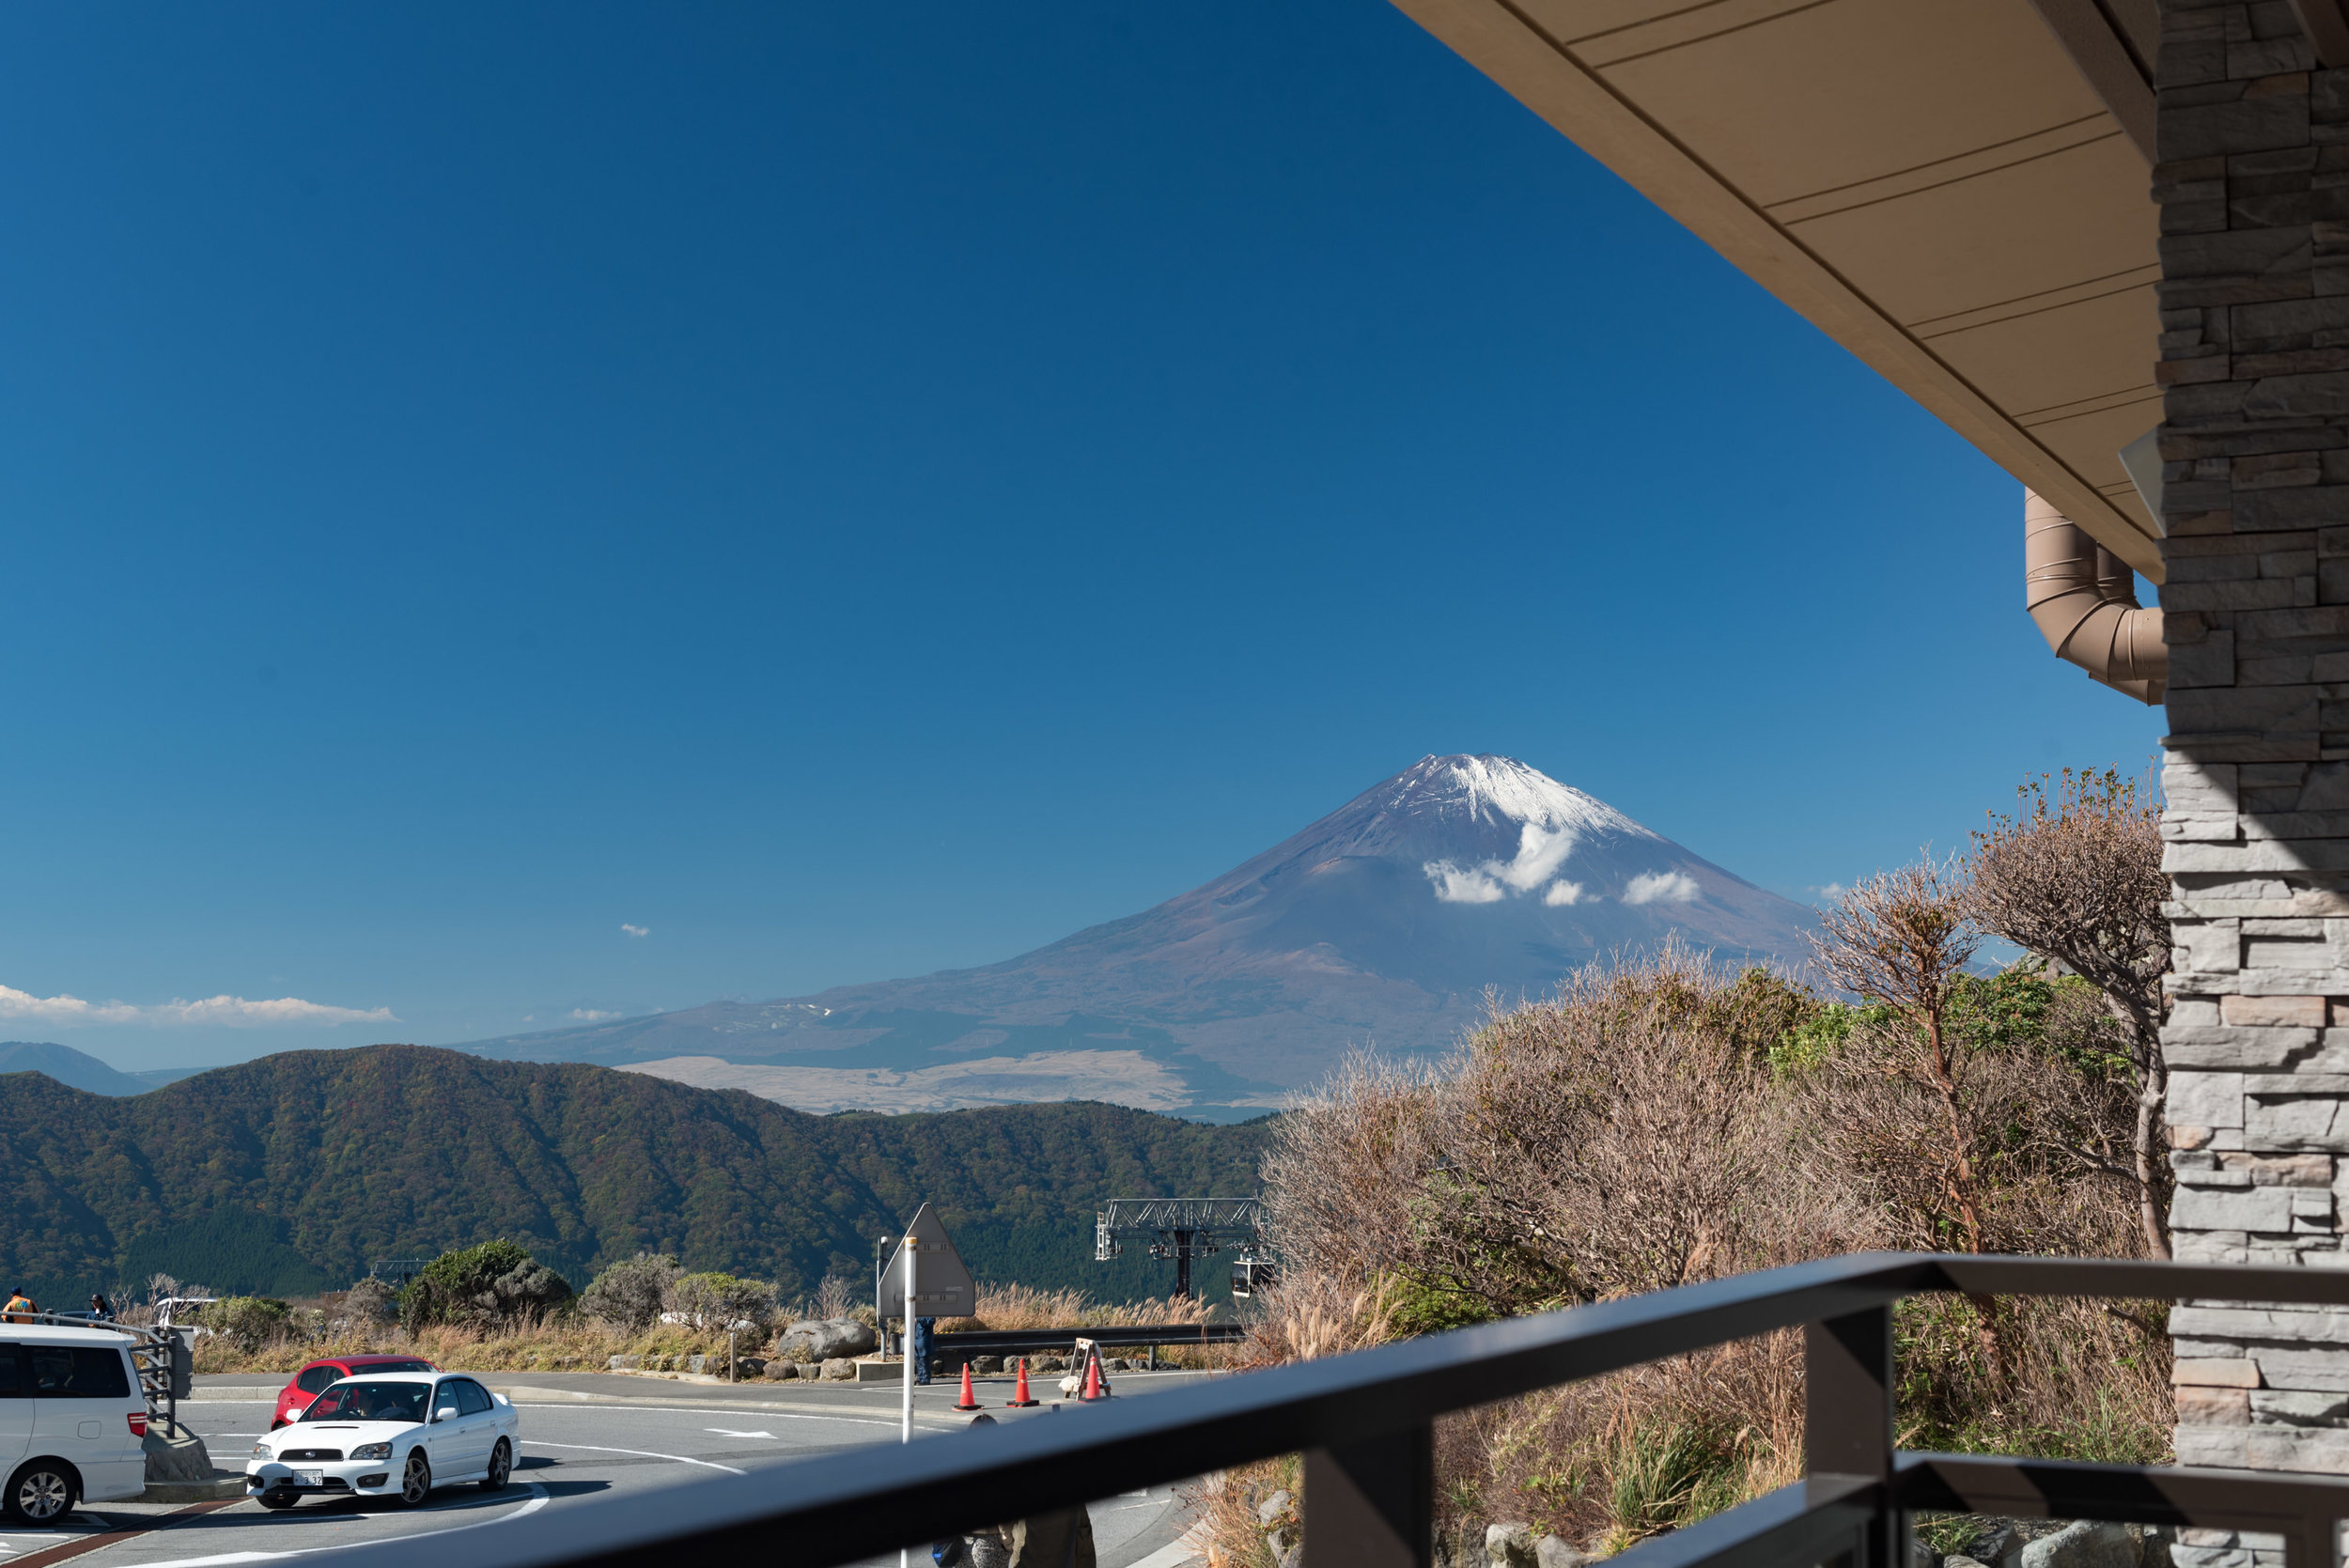 Mt. Fuji at Owakudani  Travel Guide for Day-trip to Hakone from Tokyo